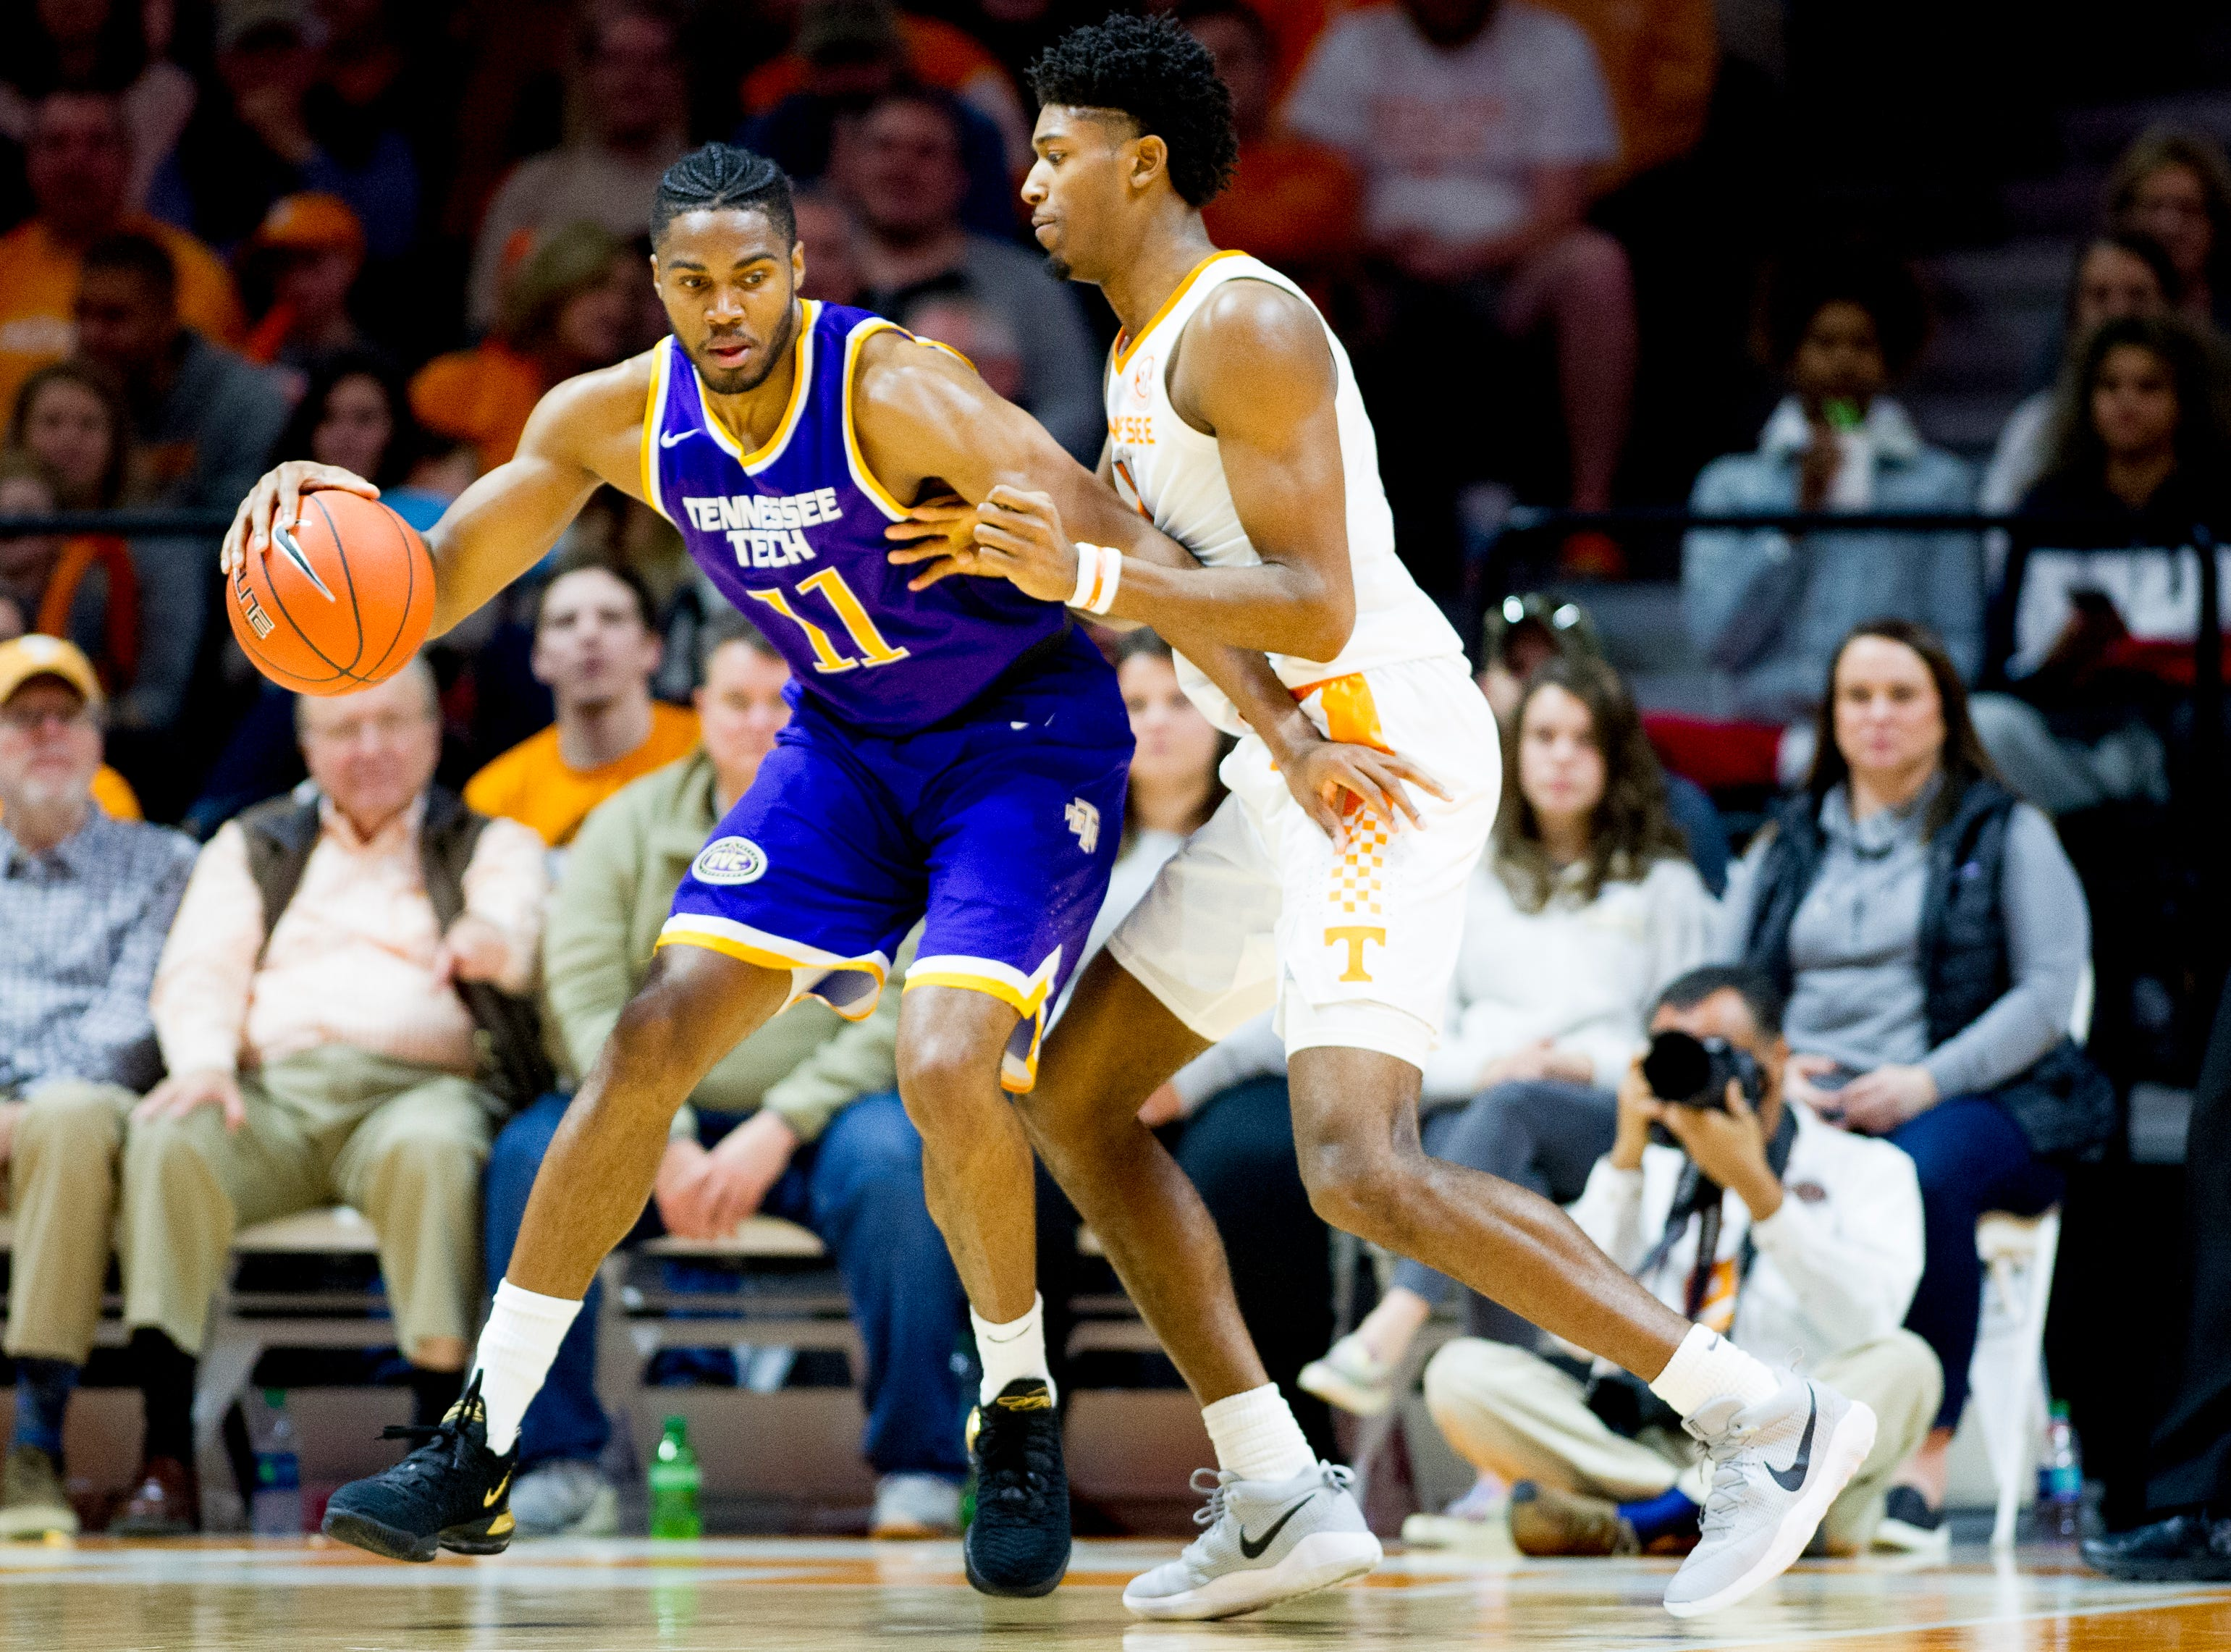 Tennessee Tech center Micaiah Henry (11) tries to dribble around Tennessee forward Kyle Alexander (11) during a game between Tennessee and Tennessee Tech at Thompson-Boling Arena in Knoxville, Tennessee on Saturday, December 29, 2018.